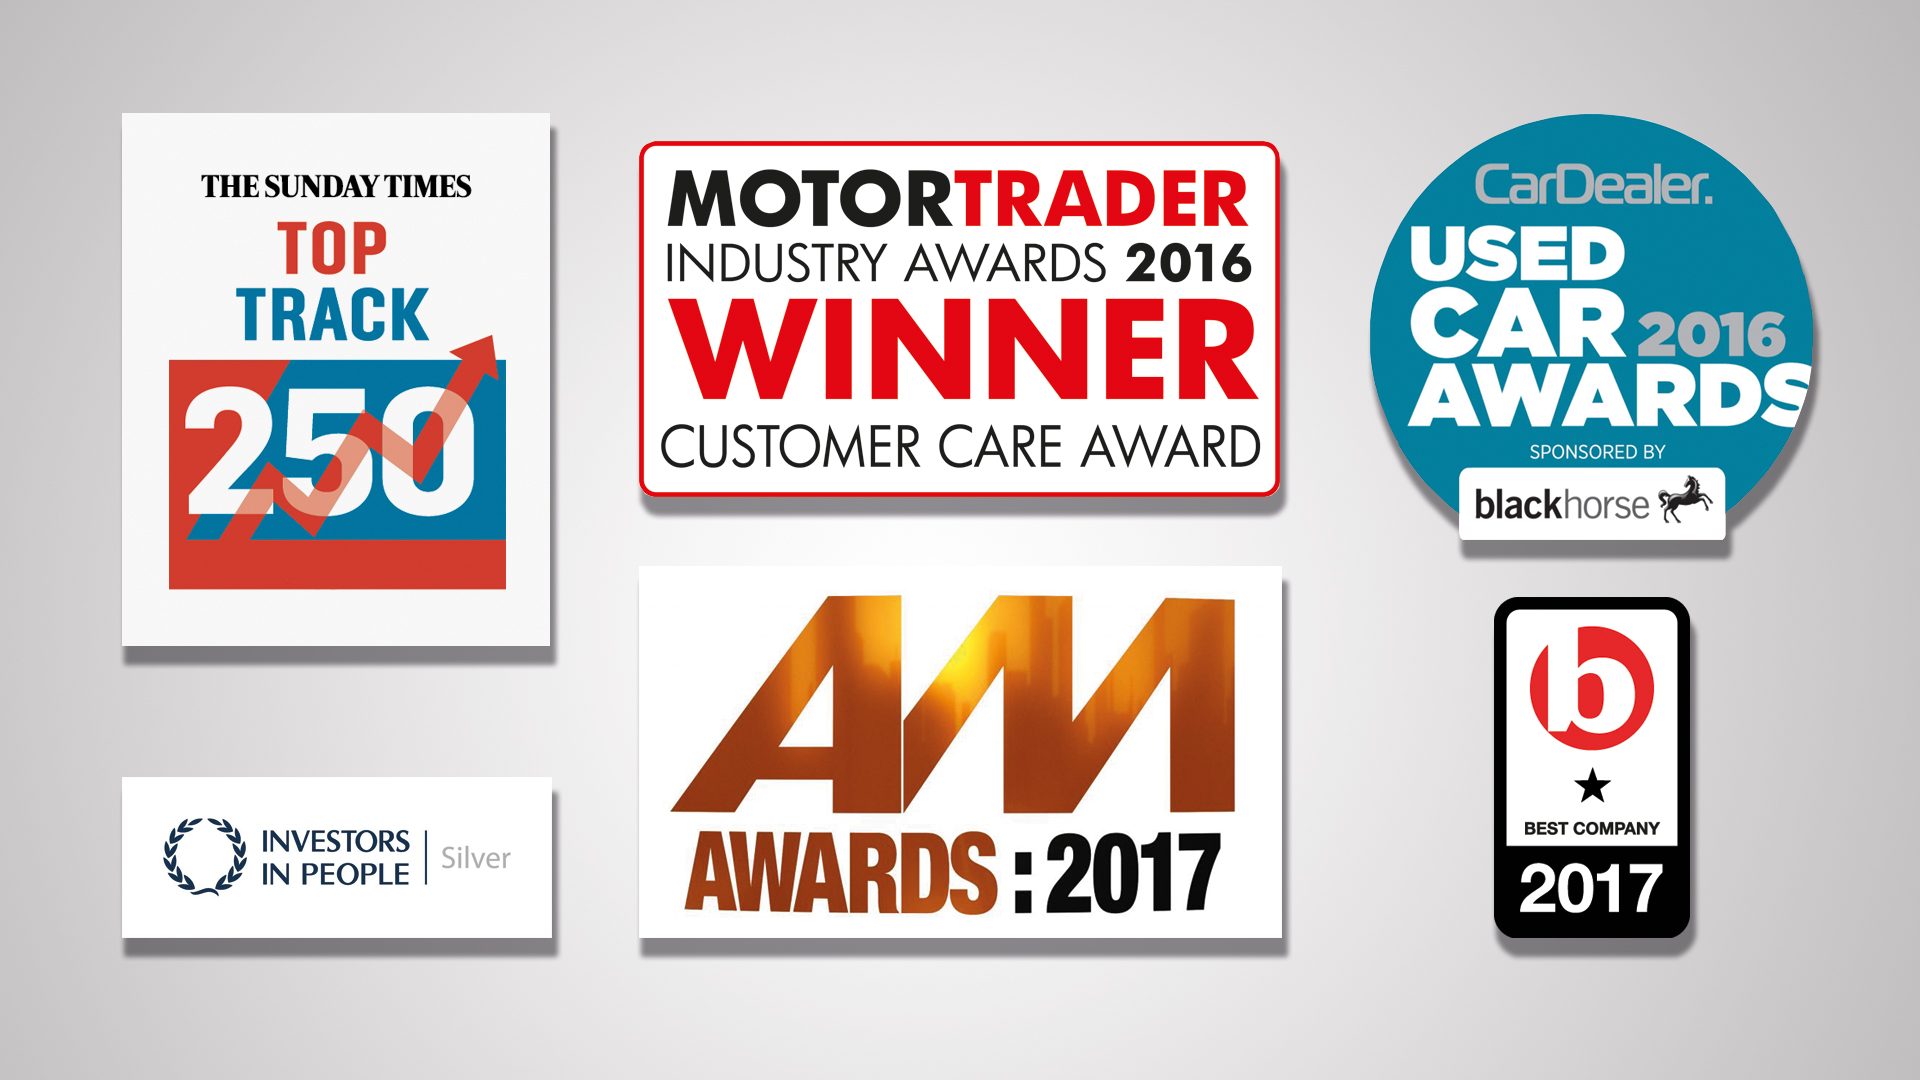 Awards: CarShop's award successes